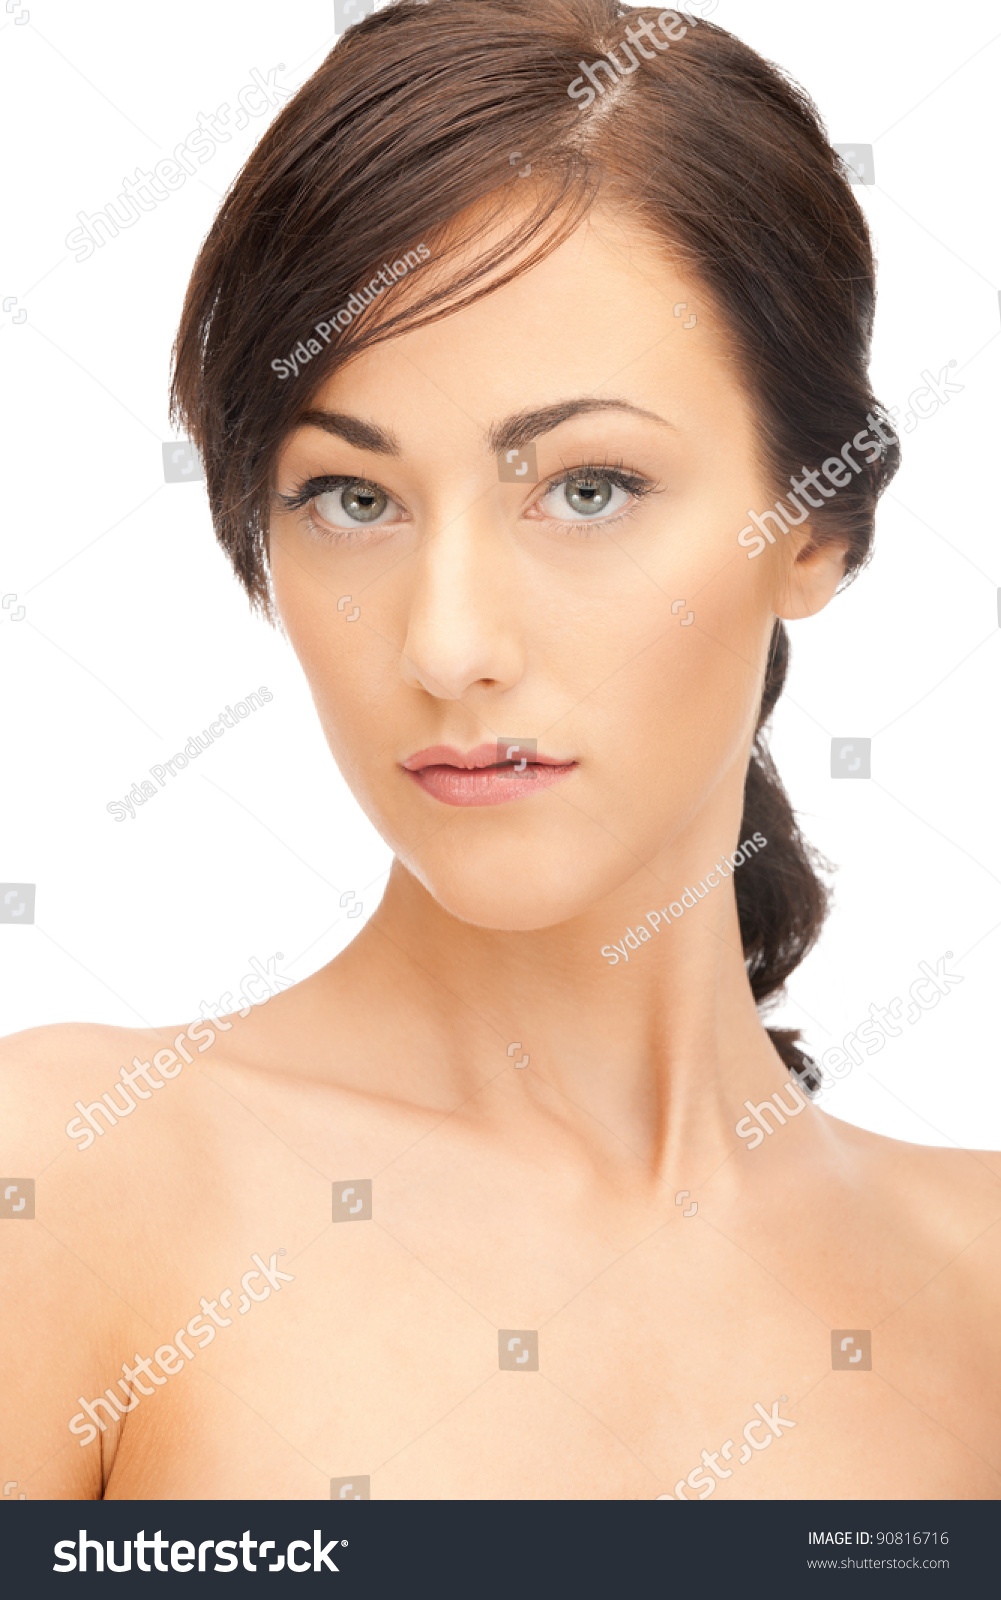 Bright closeup portrait picture beautiful woman stock for Foto beautiful